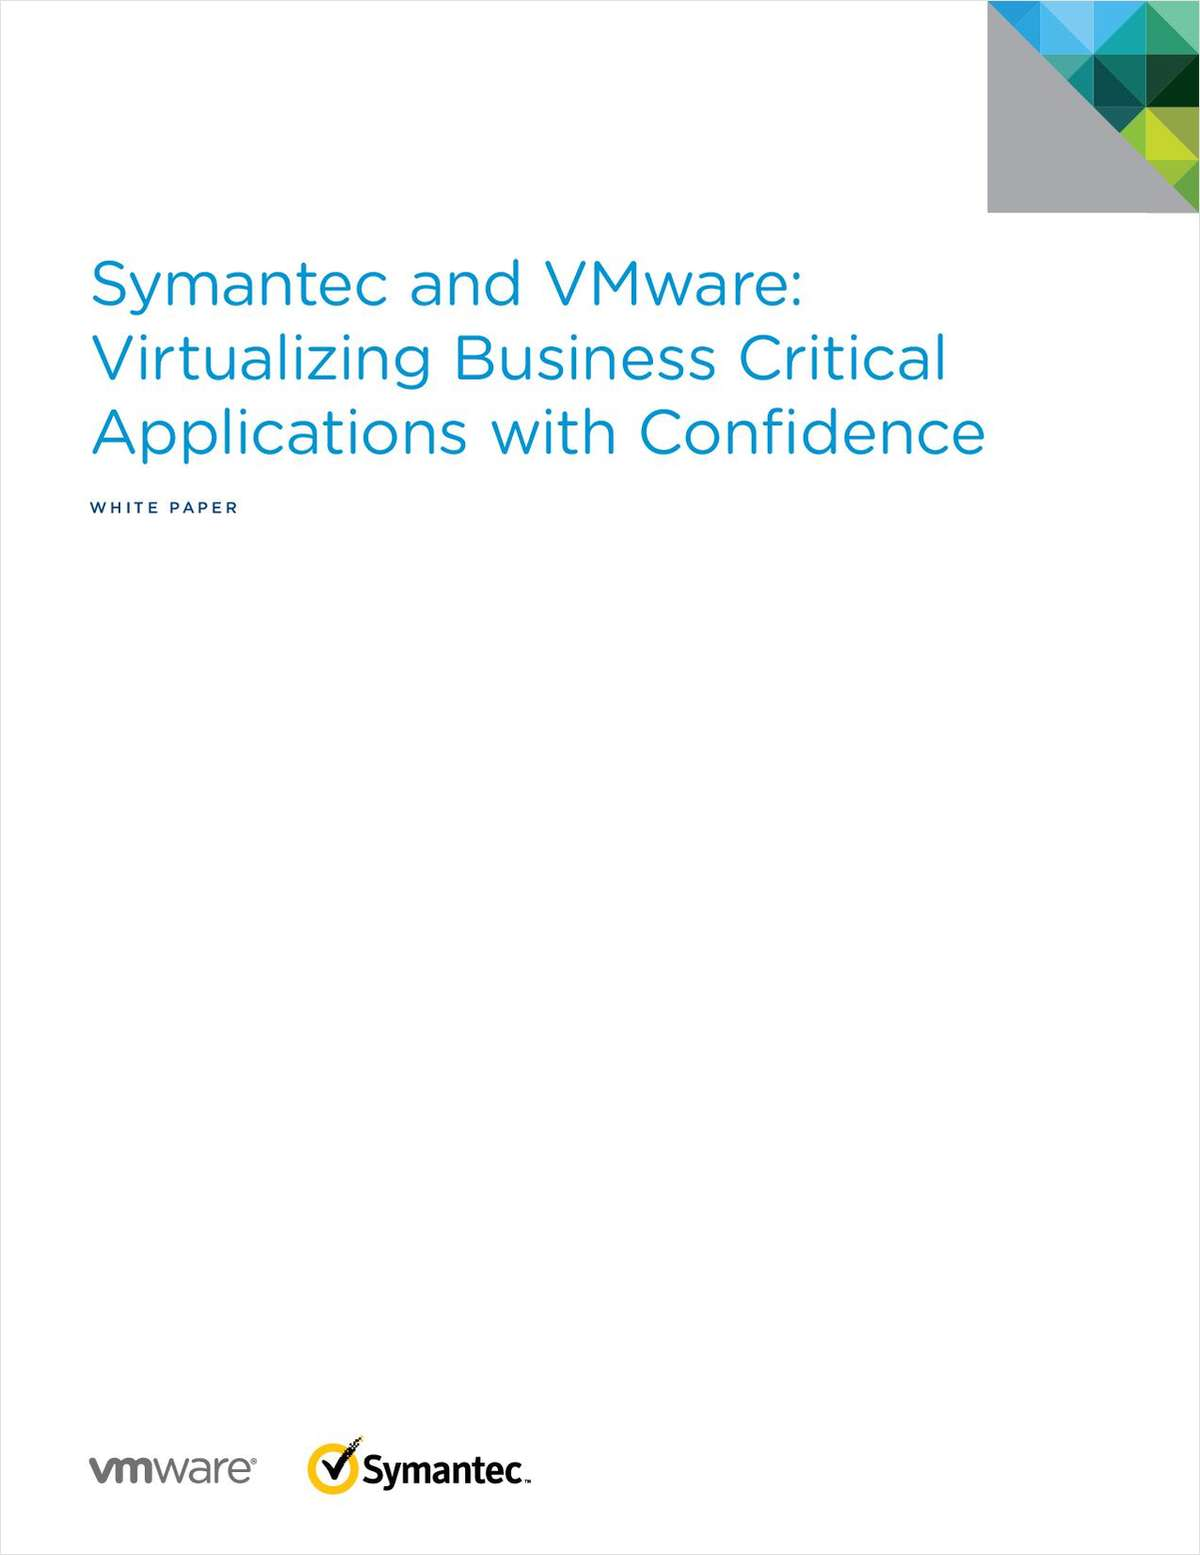 Symantec and VMware:  Virtualizing Business Critical  Applications with Confidence